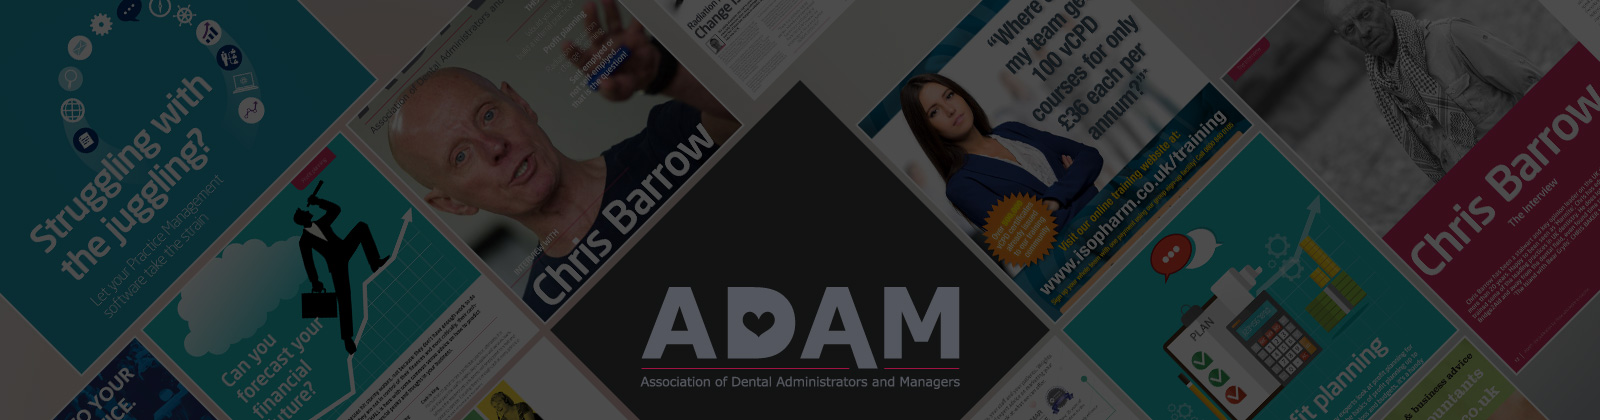 Welcome to the Association of Dental Administrators and Managers